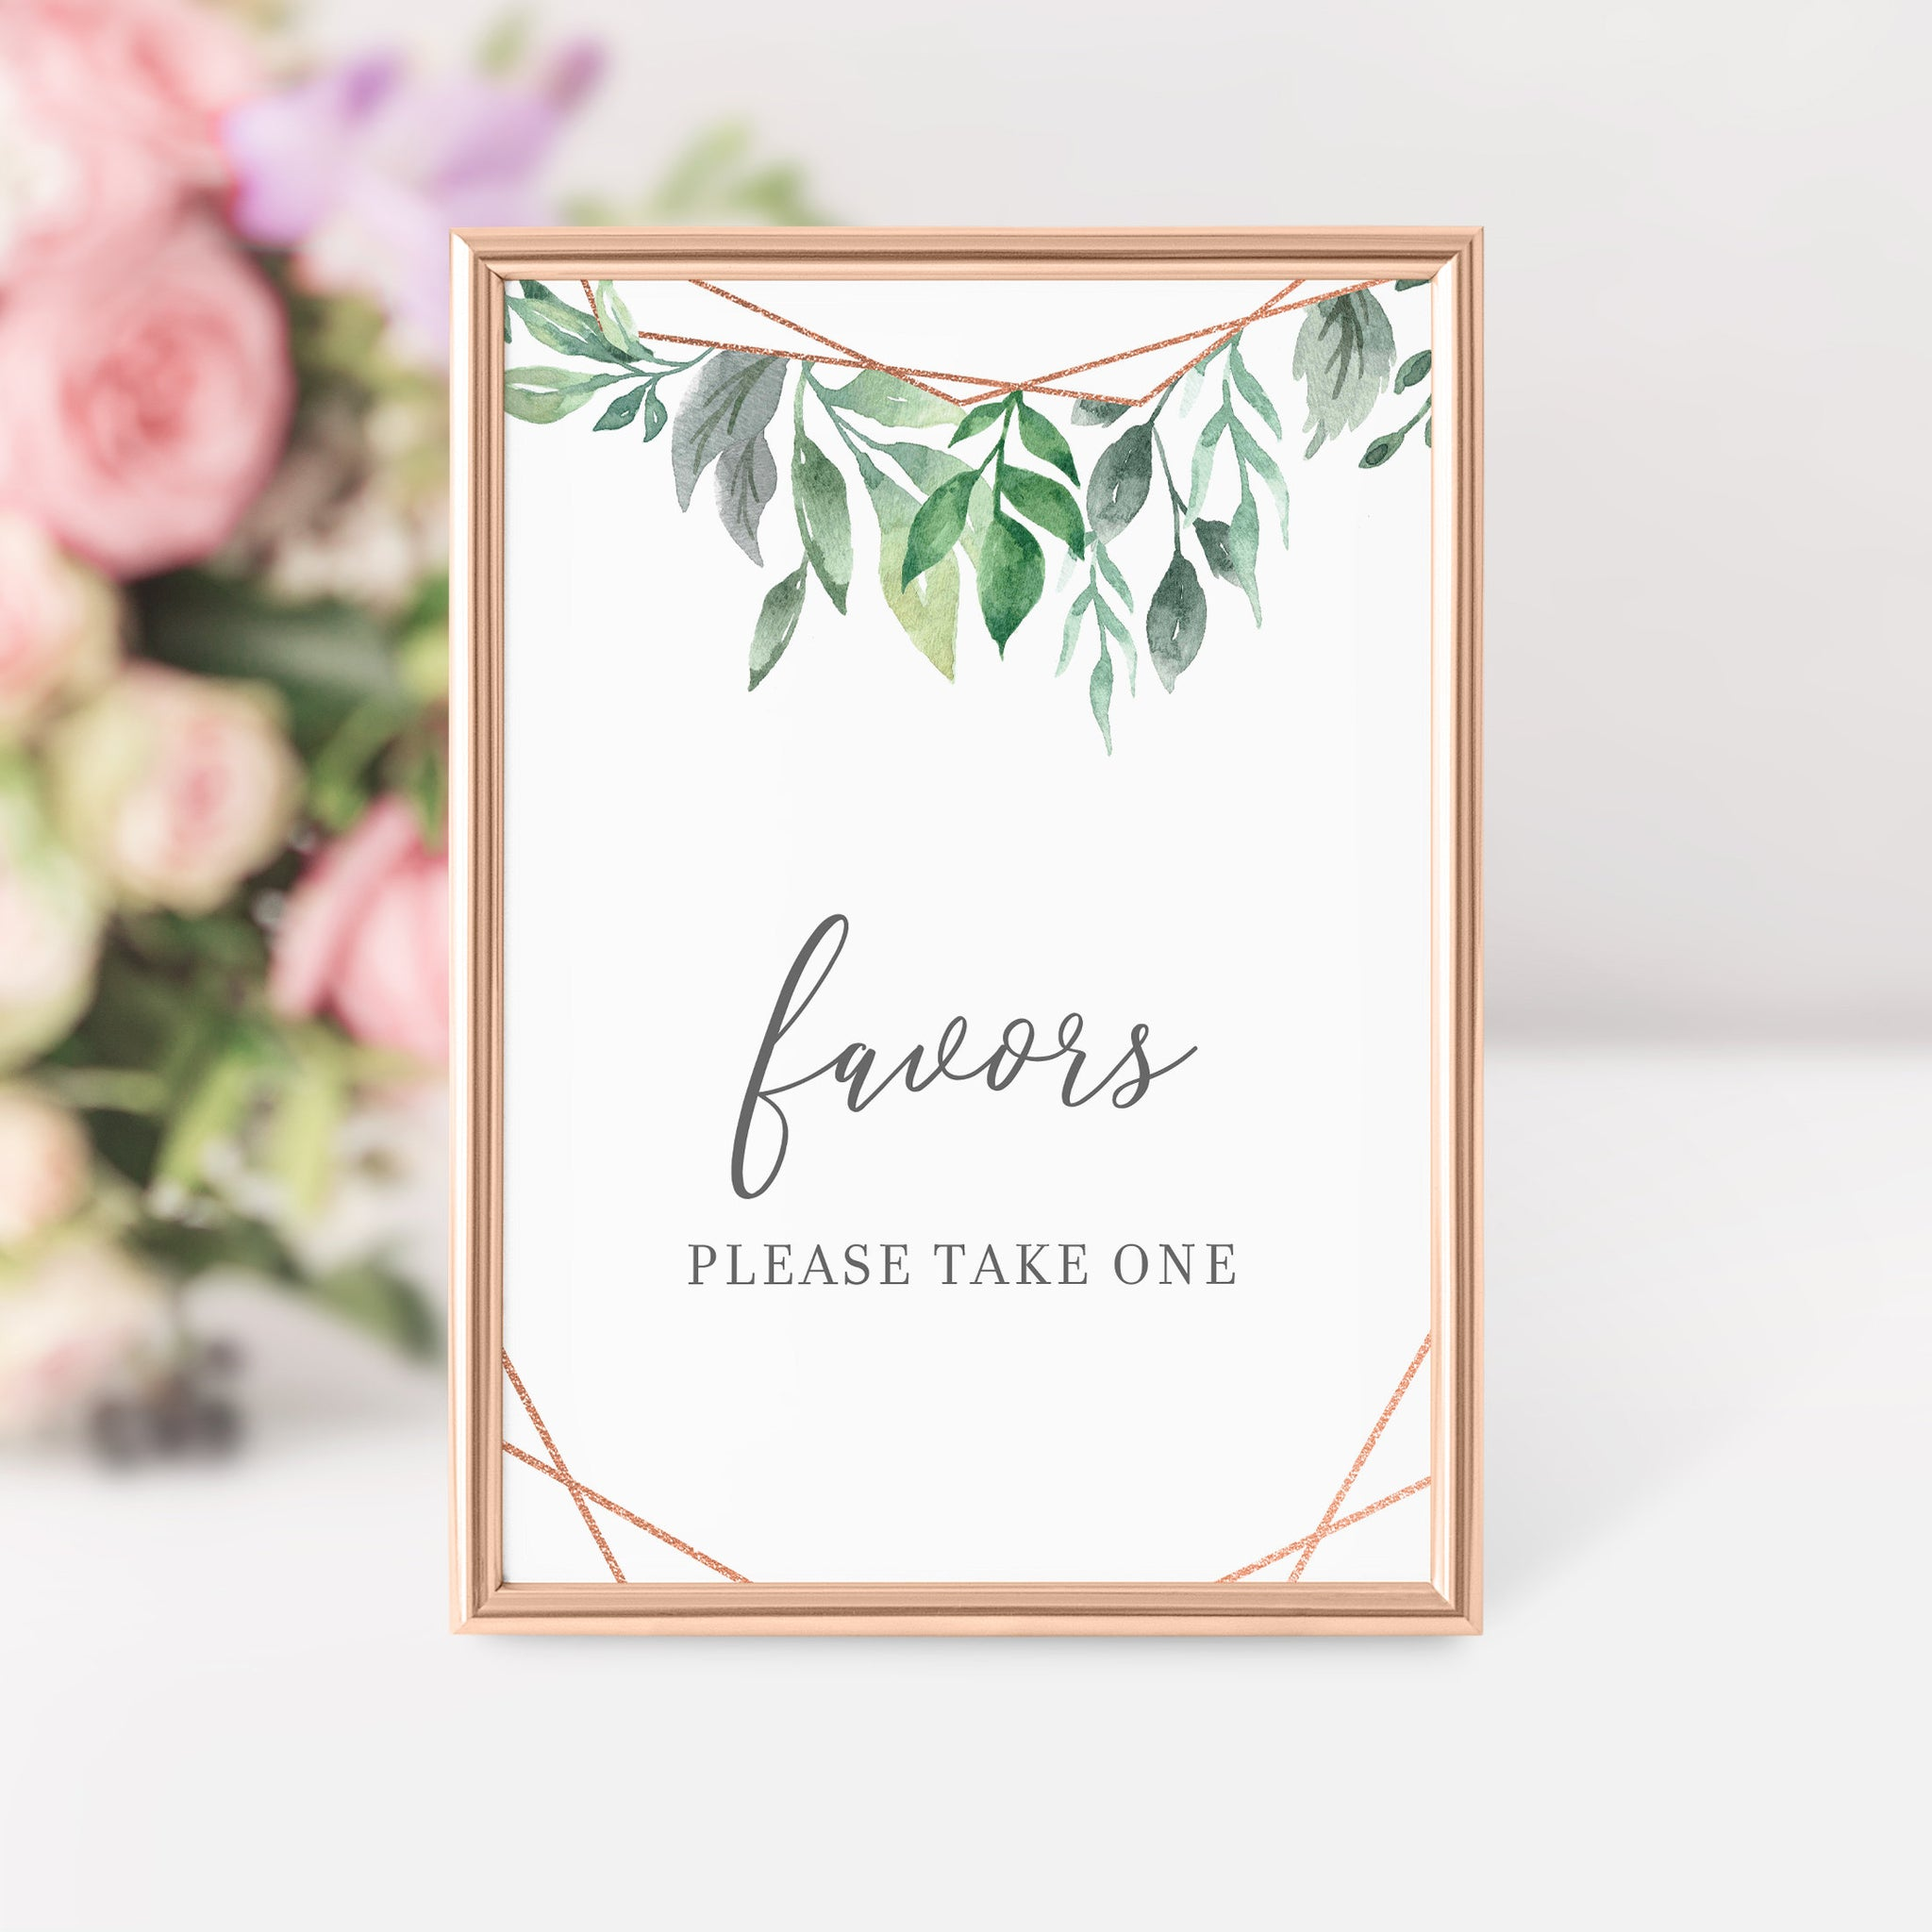 Geometric Rose Gold Greenery Printable Favors Sign INSTANT DOWNLOAD, Birthday, Bridal Shower, Baby Shower, Wedding Decorations - GFRG100 - @PlumPolkaDot